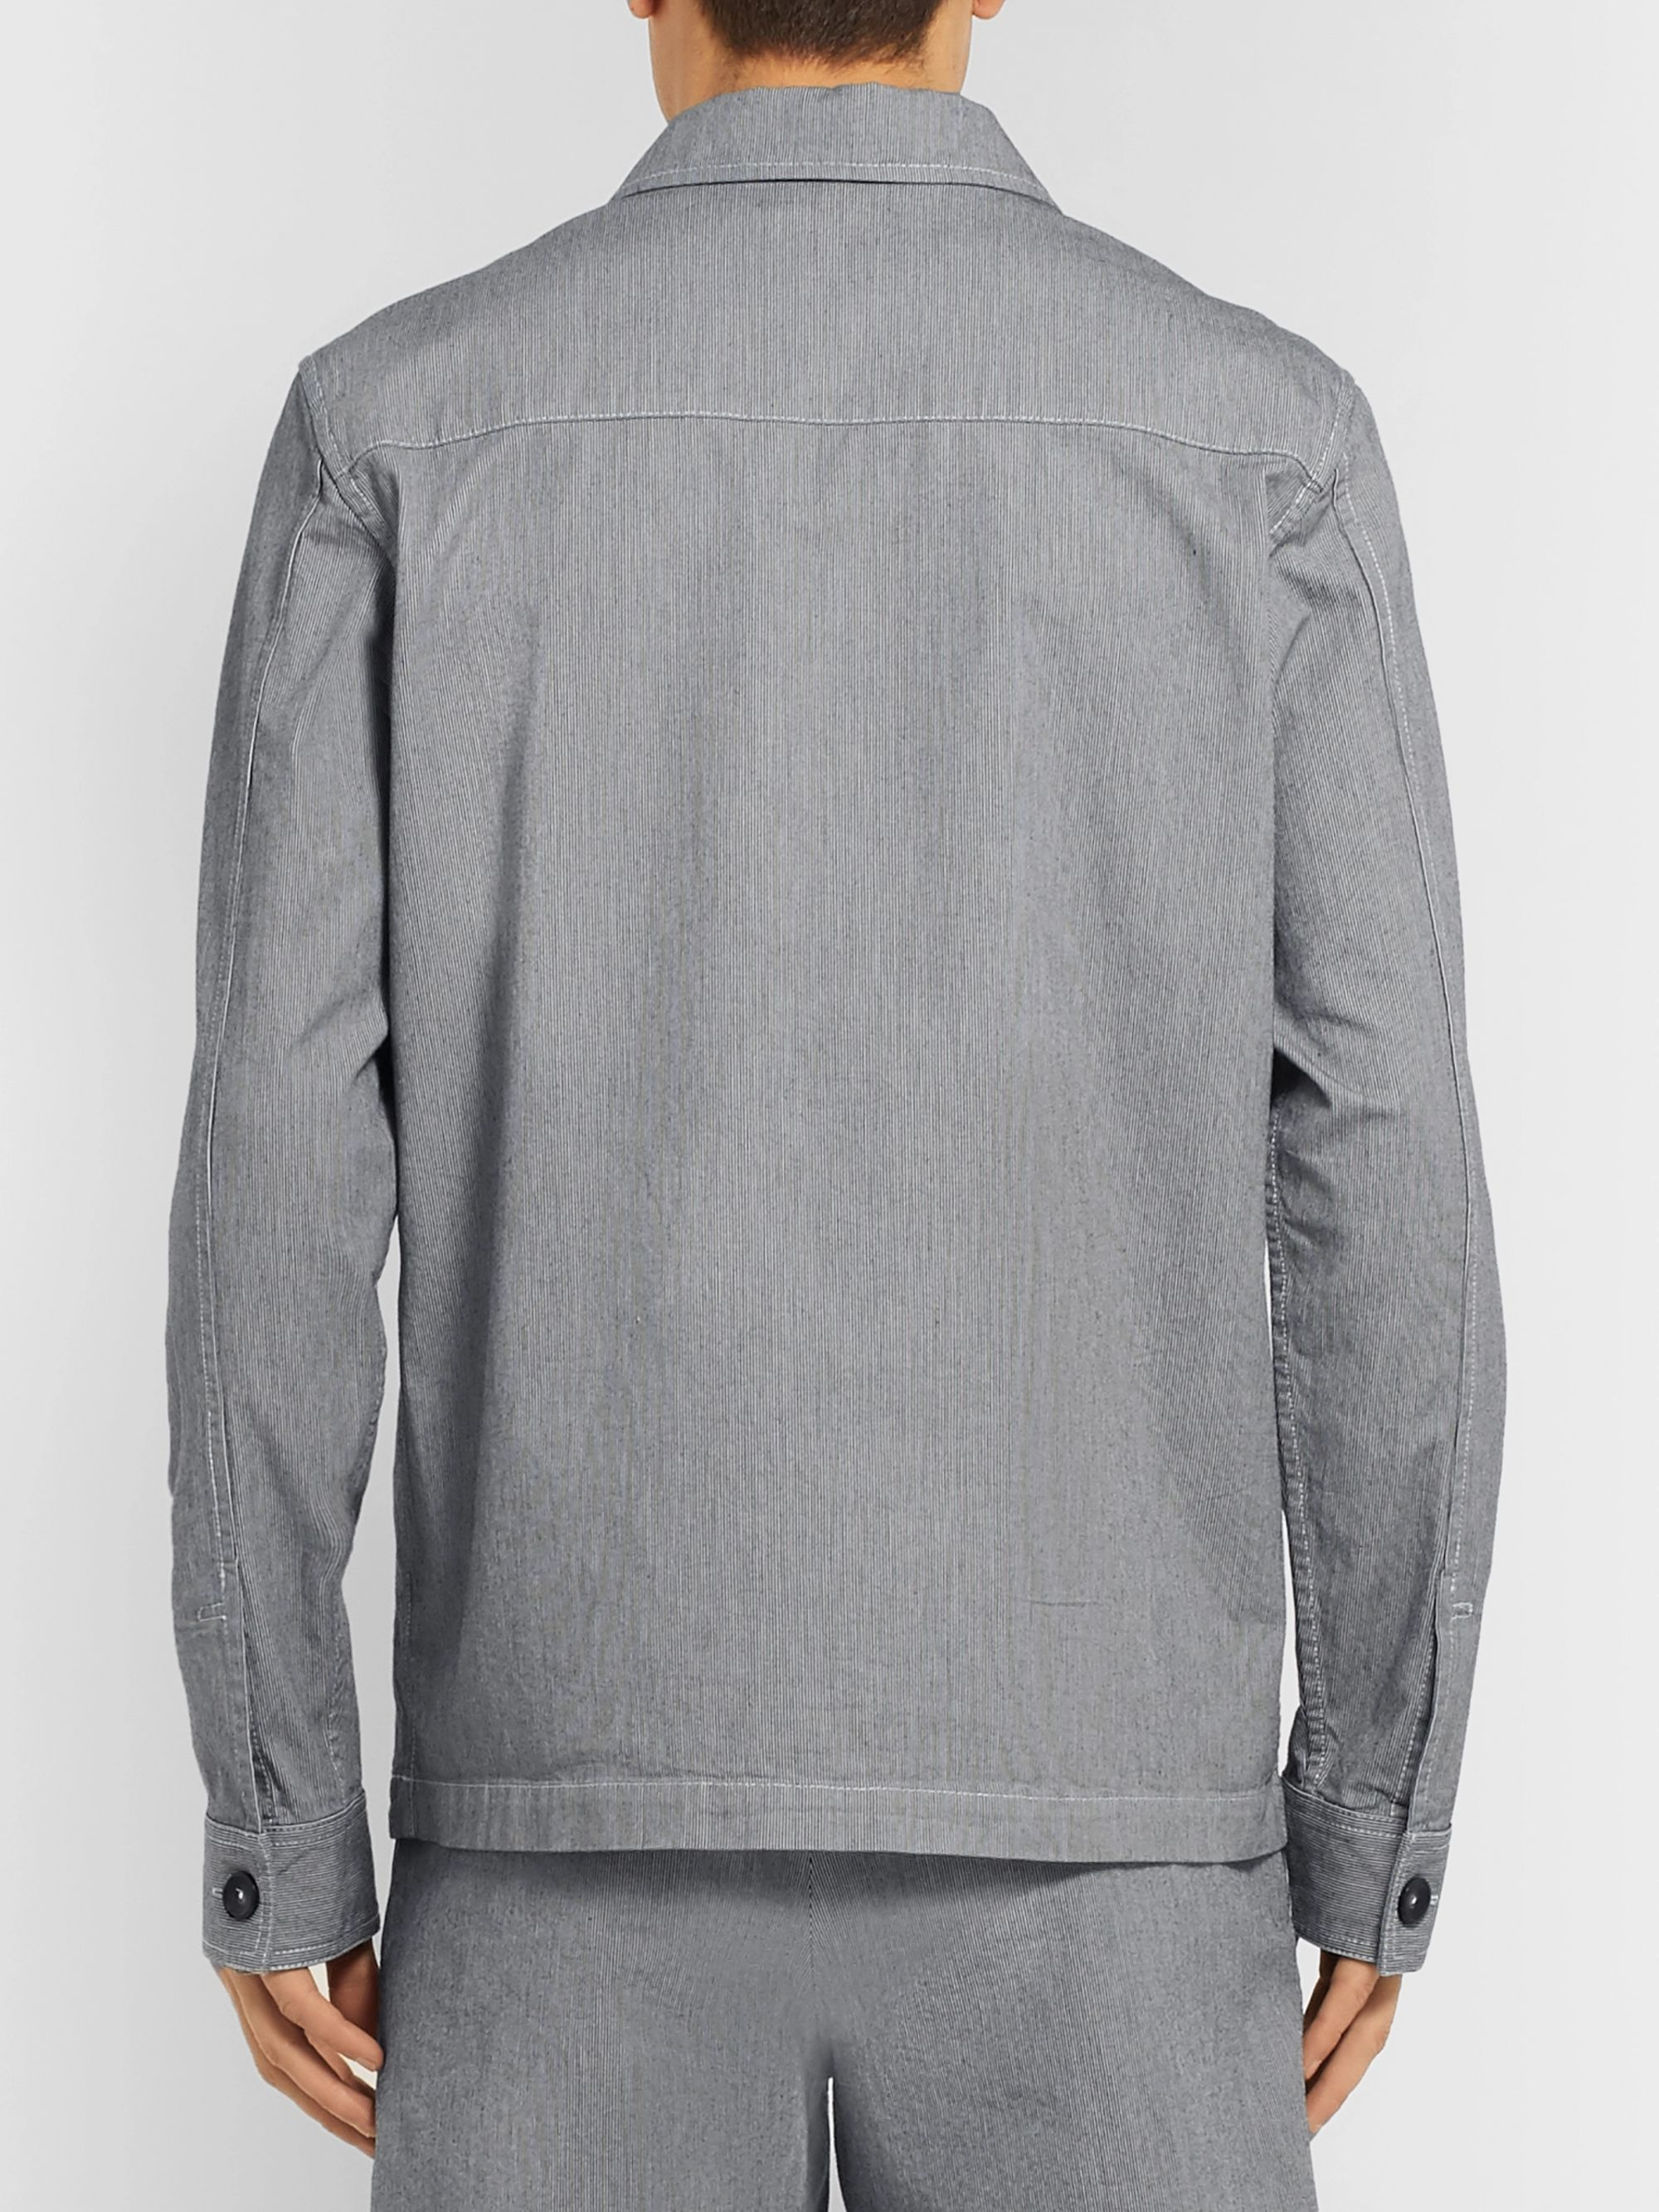 A.P.C. Striped Cotton Chore Jacket